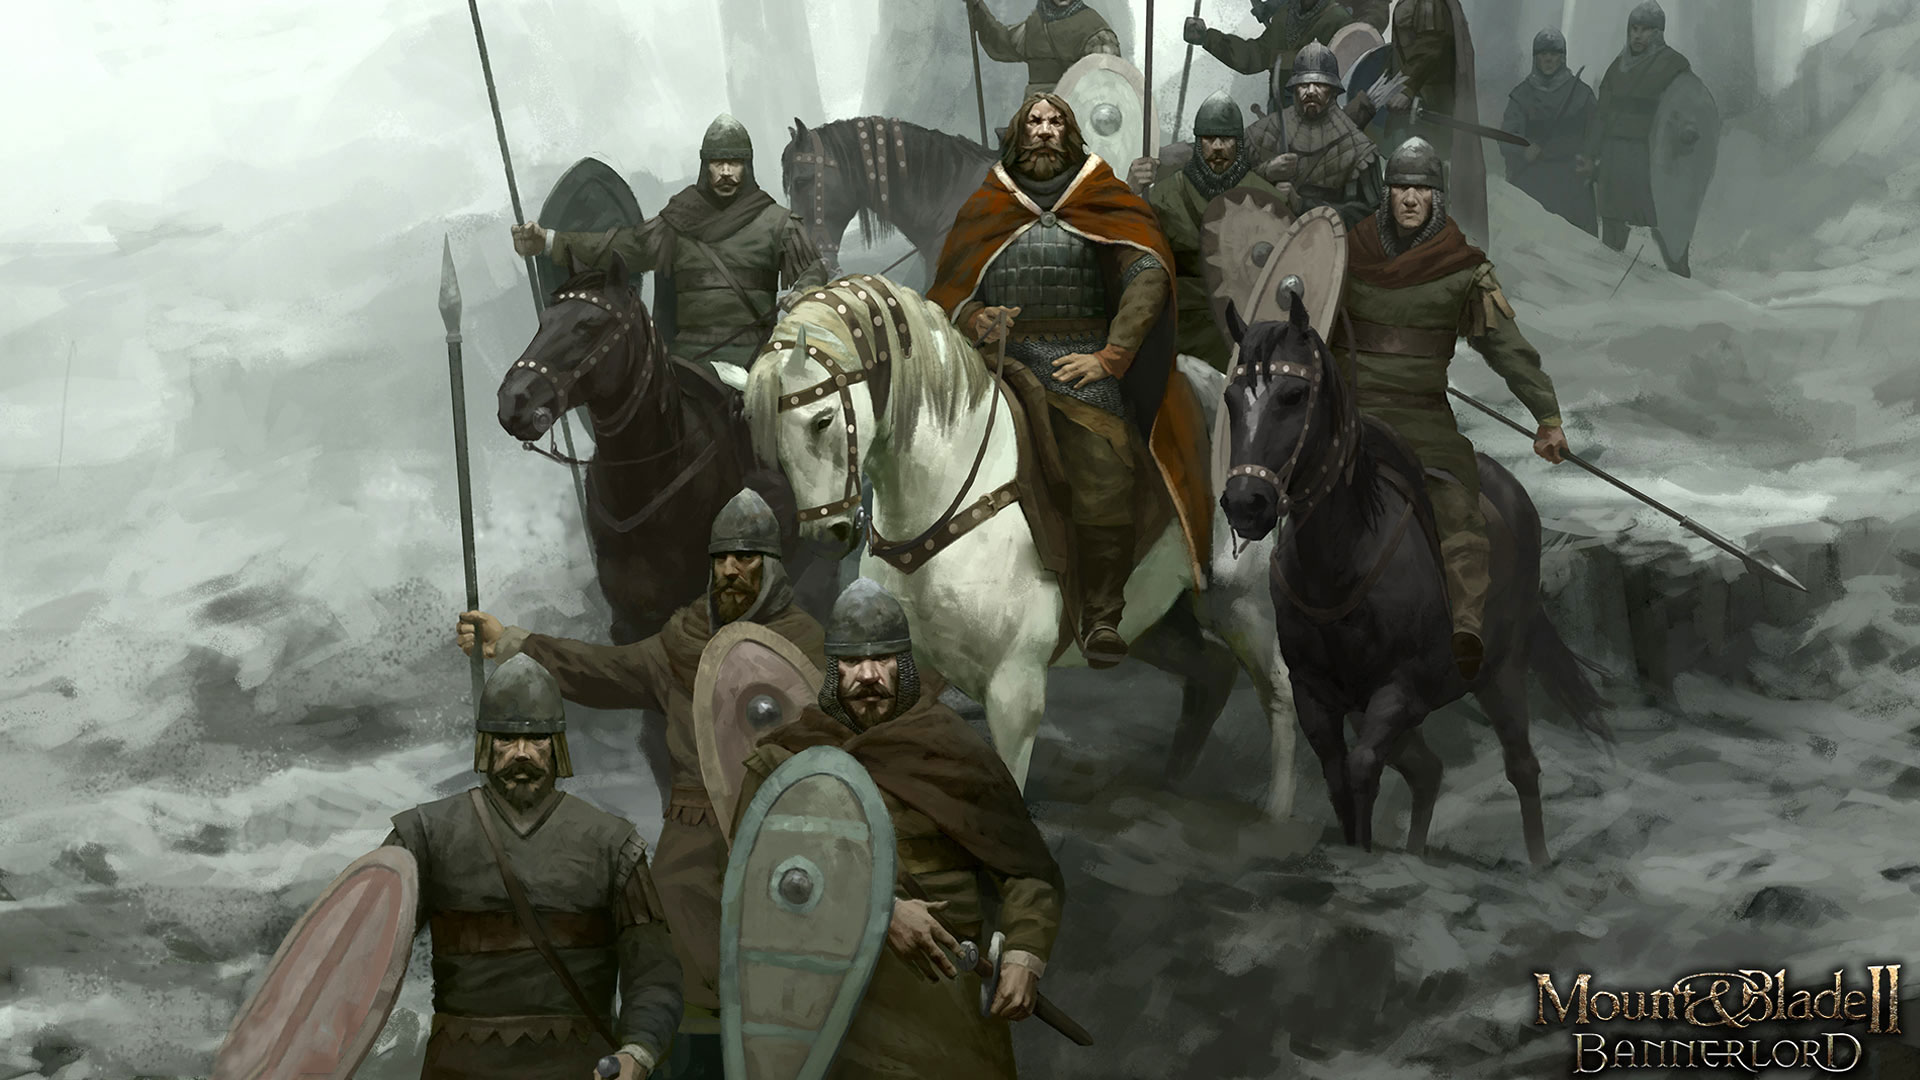 Mount Blade 2 Bannerlord Wallpapers In Ultra Hd 4k Gameranx